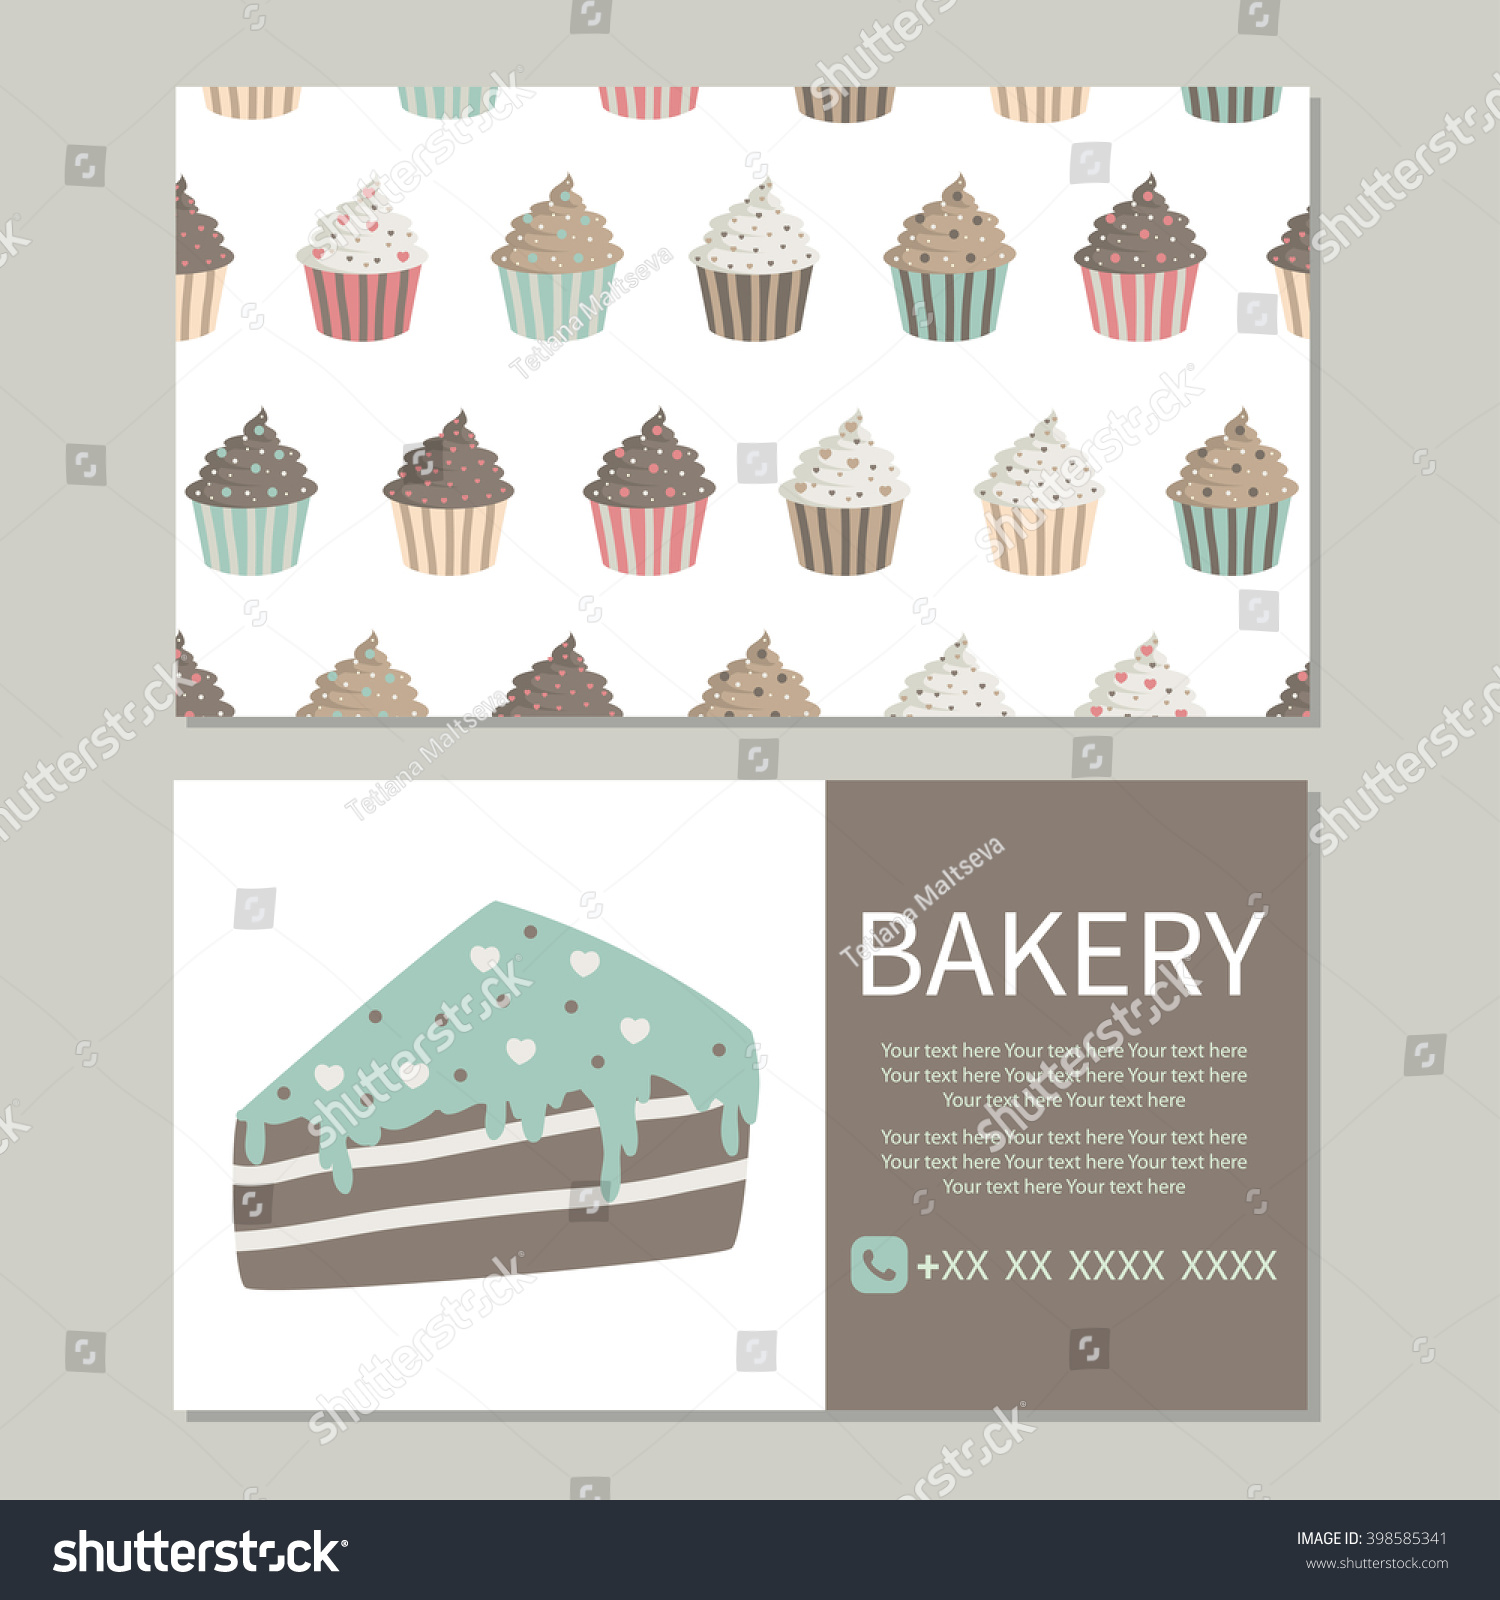 Bakery Business Card Pattern Cute Cupcakes Stock Vector 398585341 ...